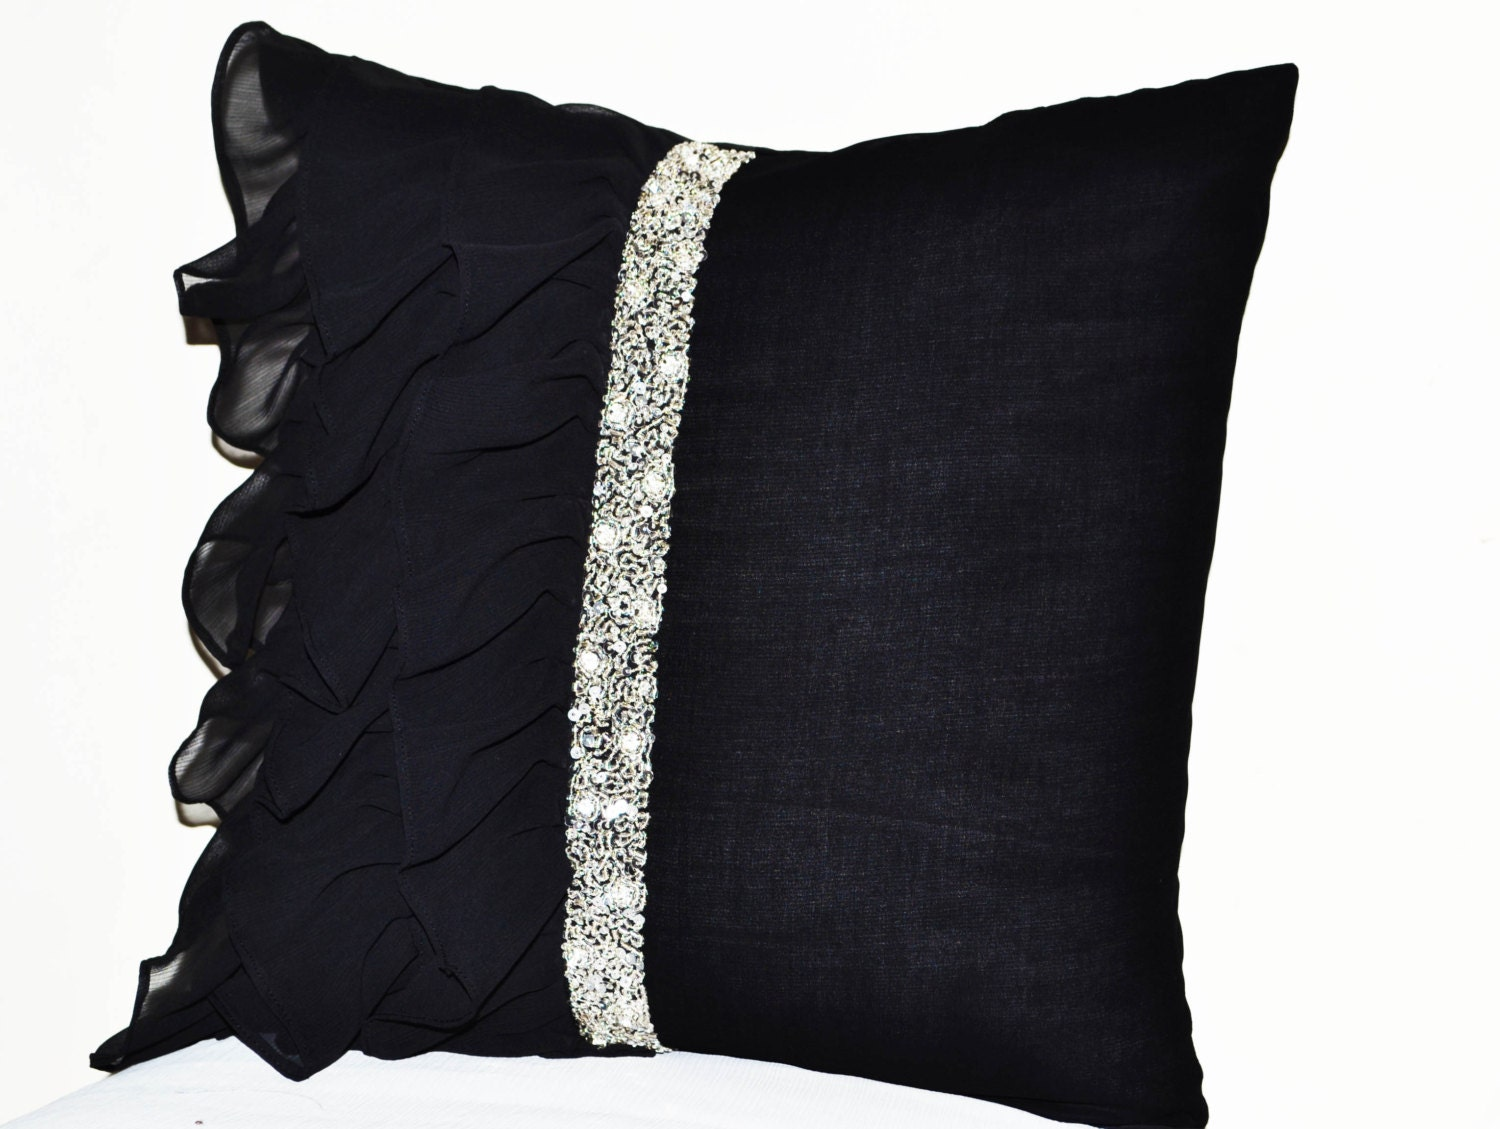 Black ruffled sequin throw pillow 18x18 Decorative Pillow